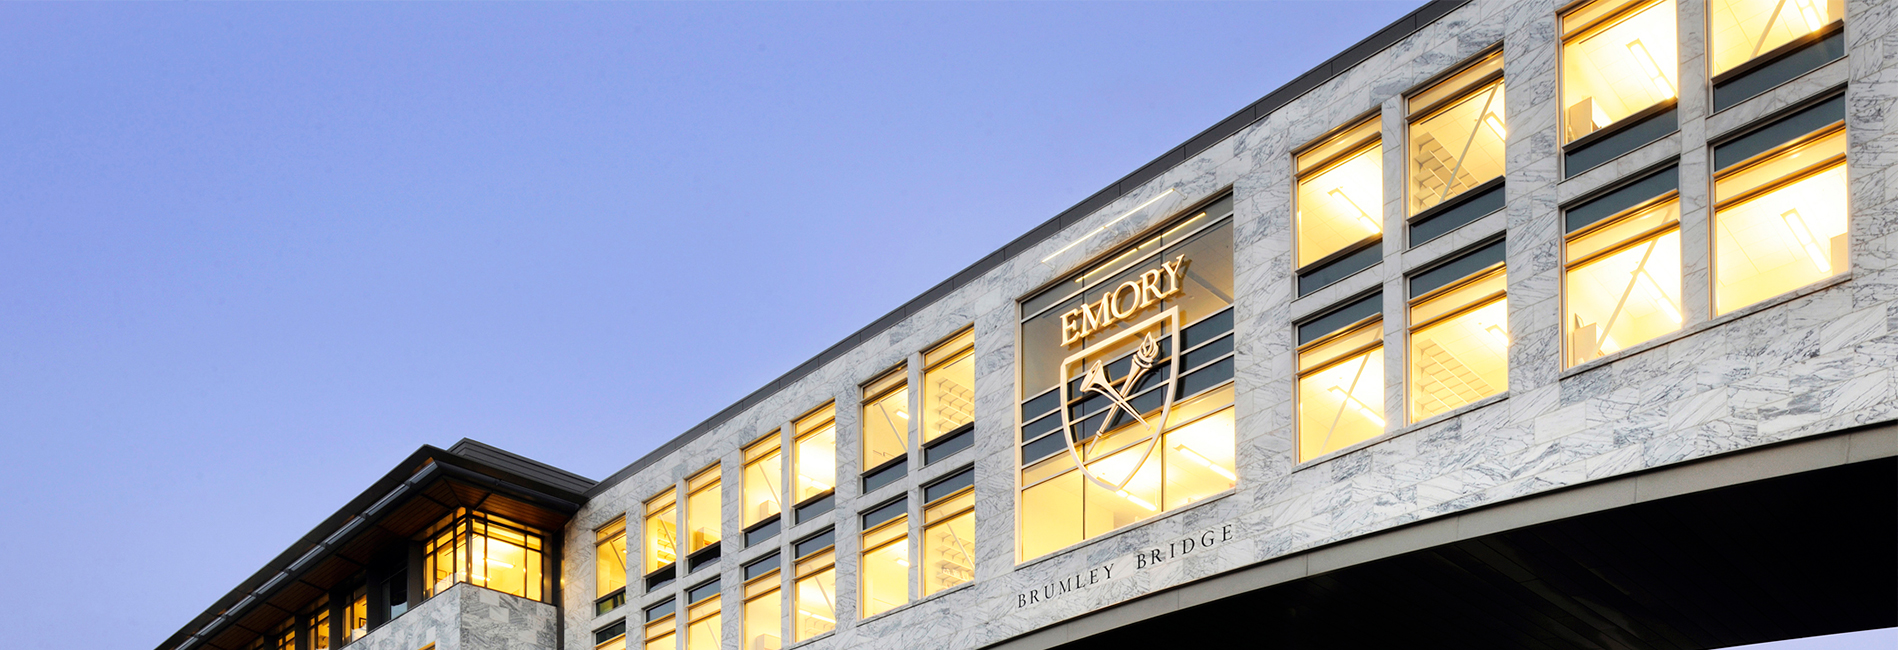 A Candler education is an investment that pays off, with (among other perks) access to Emory University, a top-20 research institution.